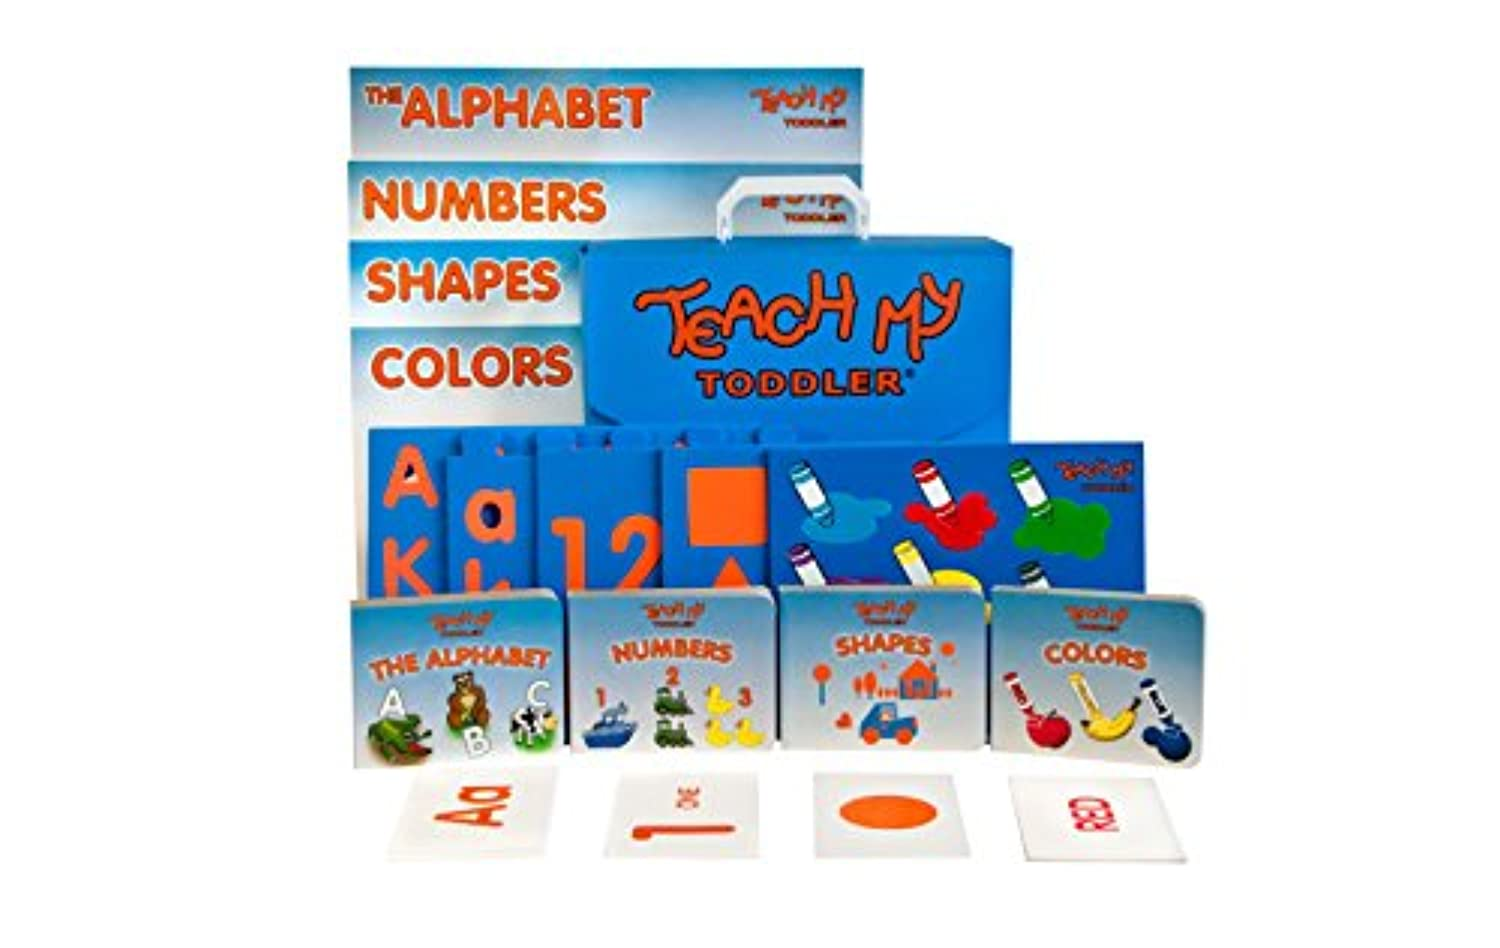 Teach My Toddler Learning Kit by Teach My -Toys